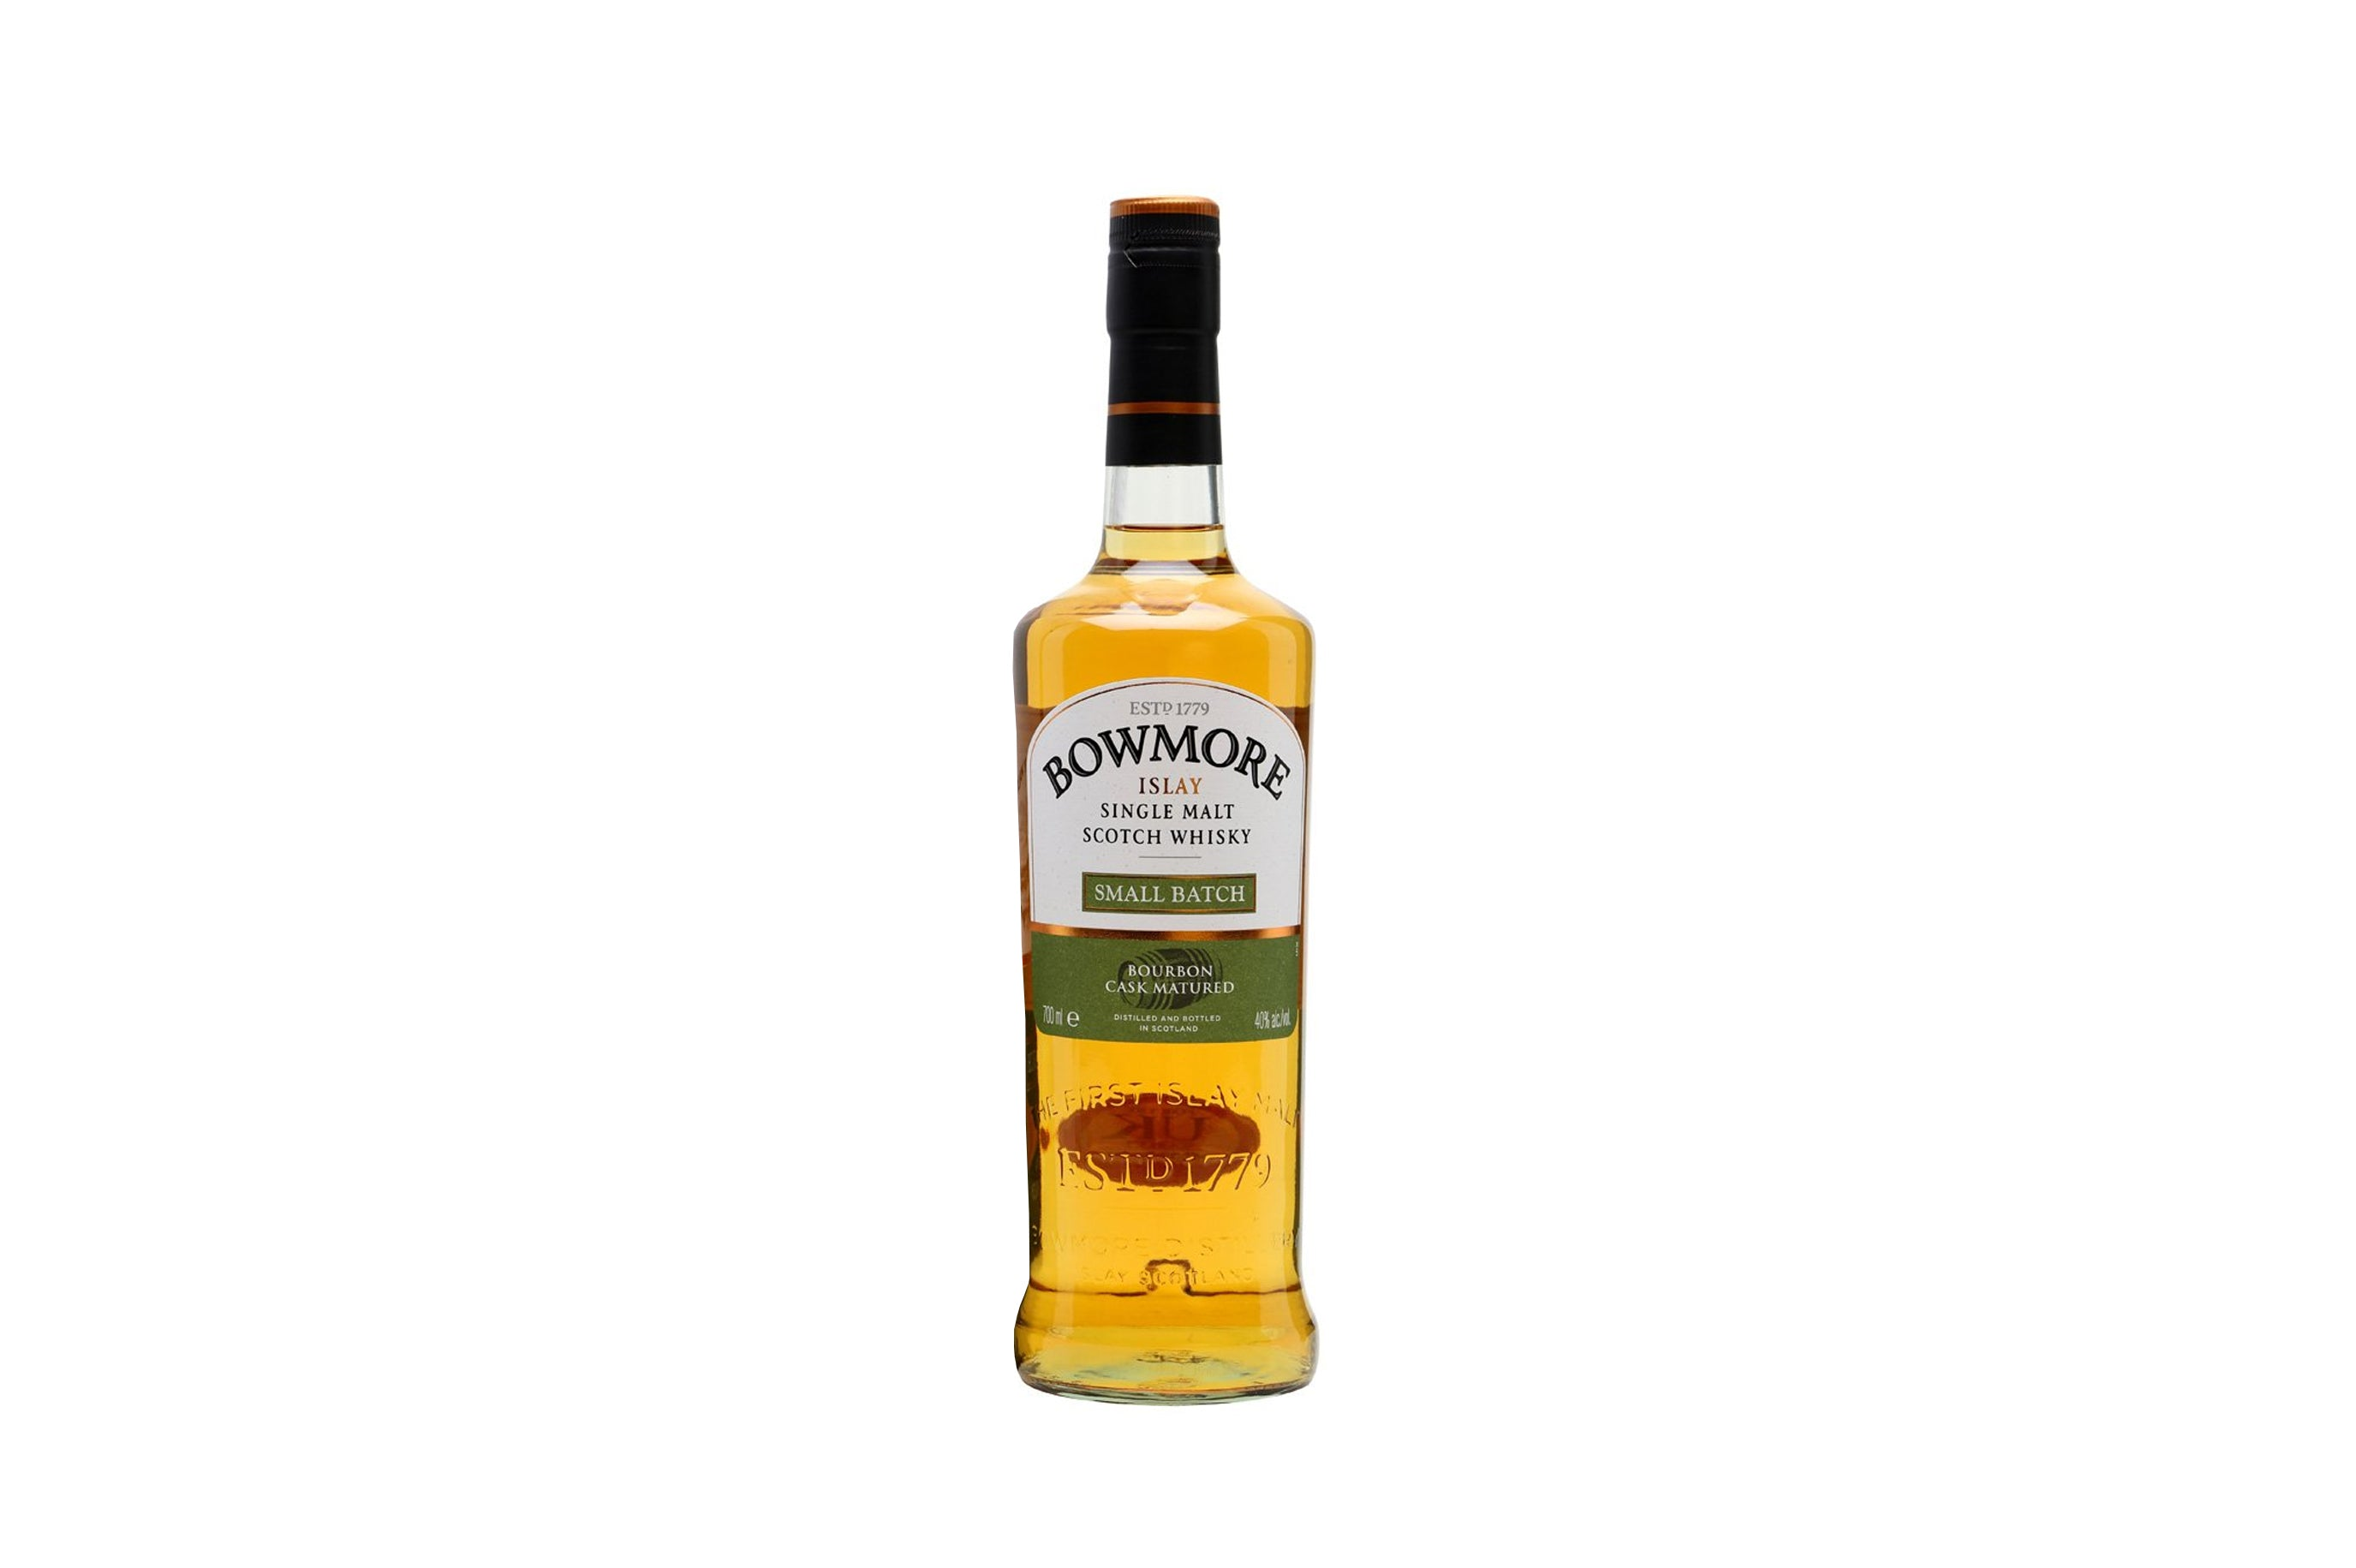 BOWMORE SMALL BATCH MALT WHISKEY 0.7LT